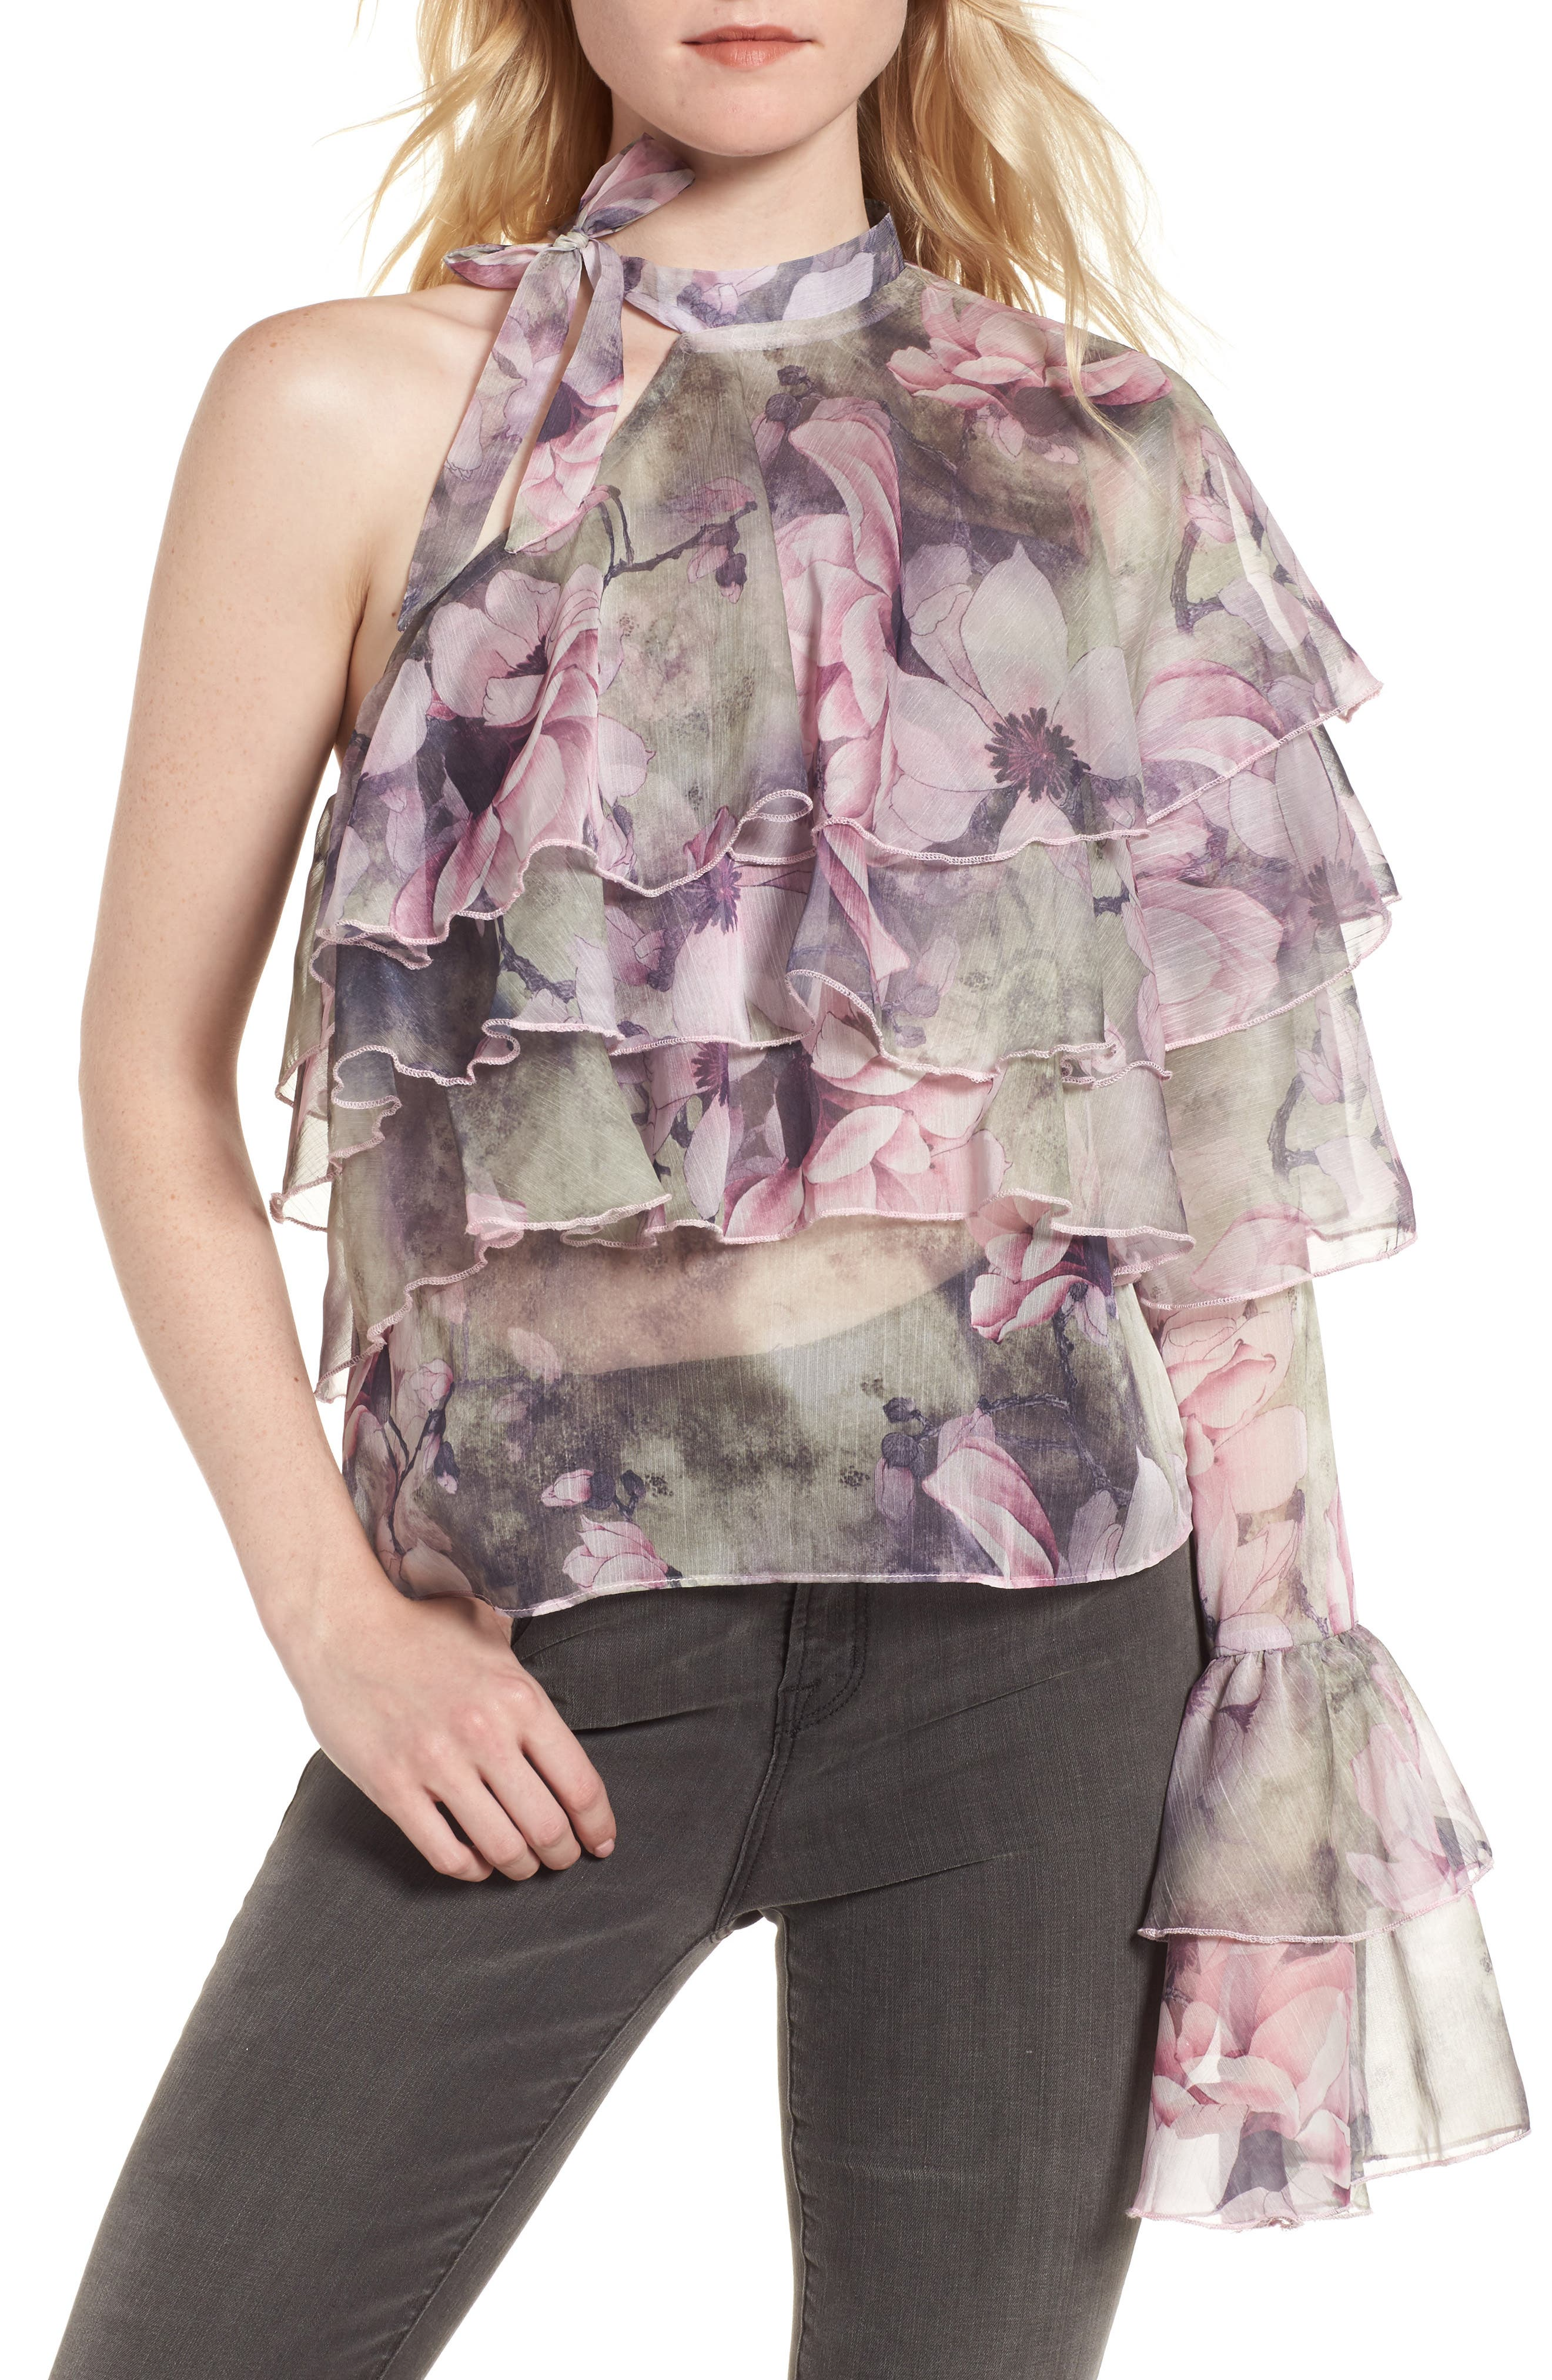 The Hopeless Romance Ruffle Blouse,                         Main,                         color, Pink Floral